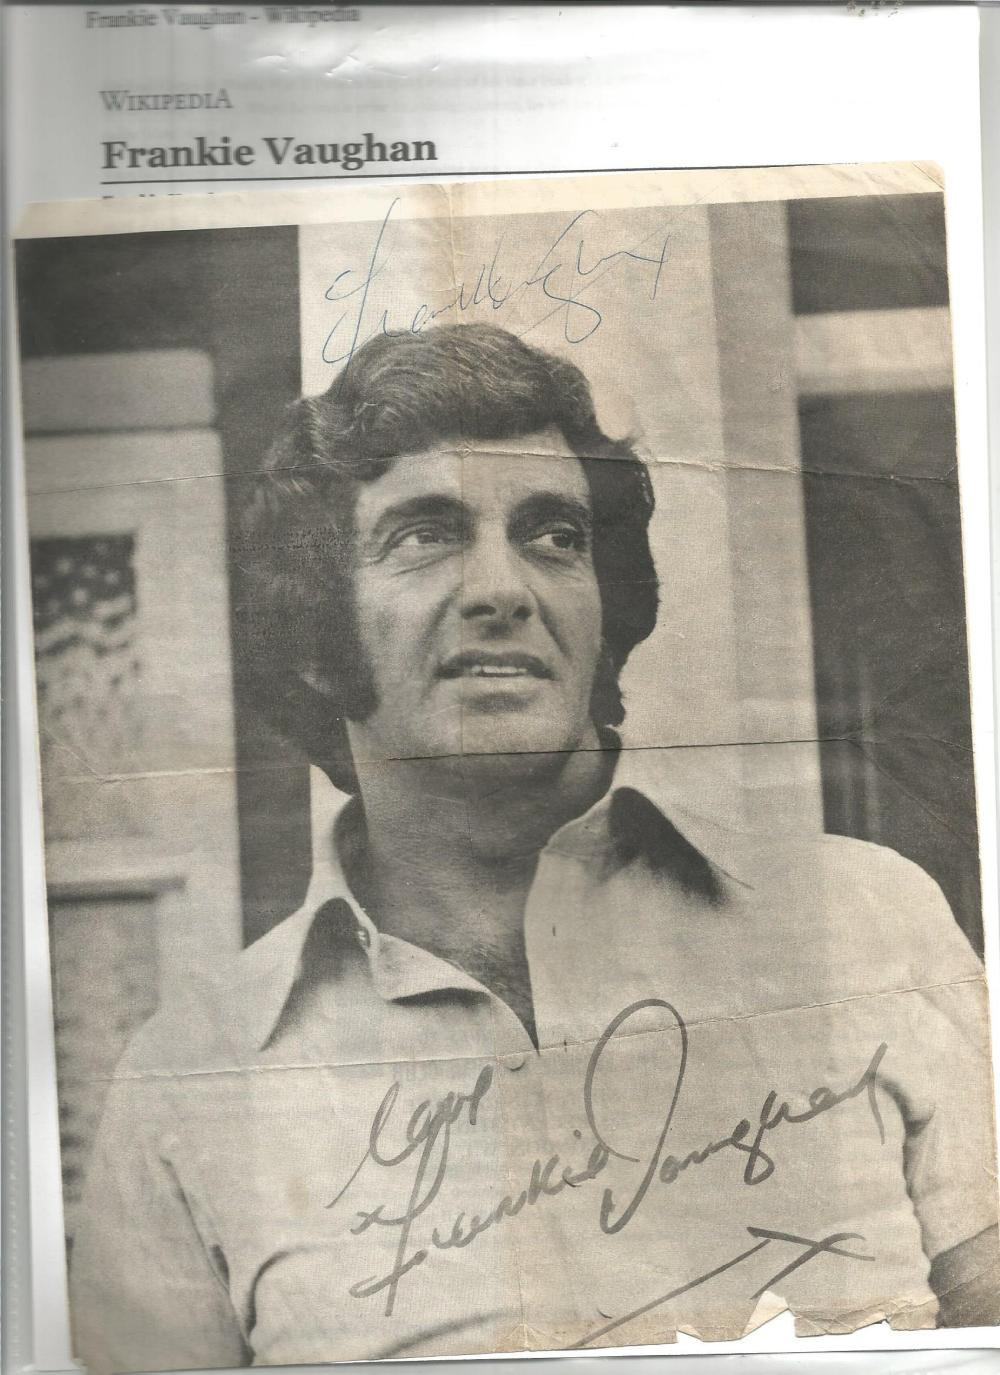 Frankie Vaughan signed 10 x 8 b/w magazine photo, has been folded with biography page. Good